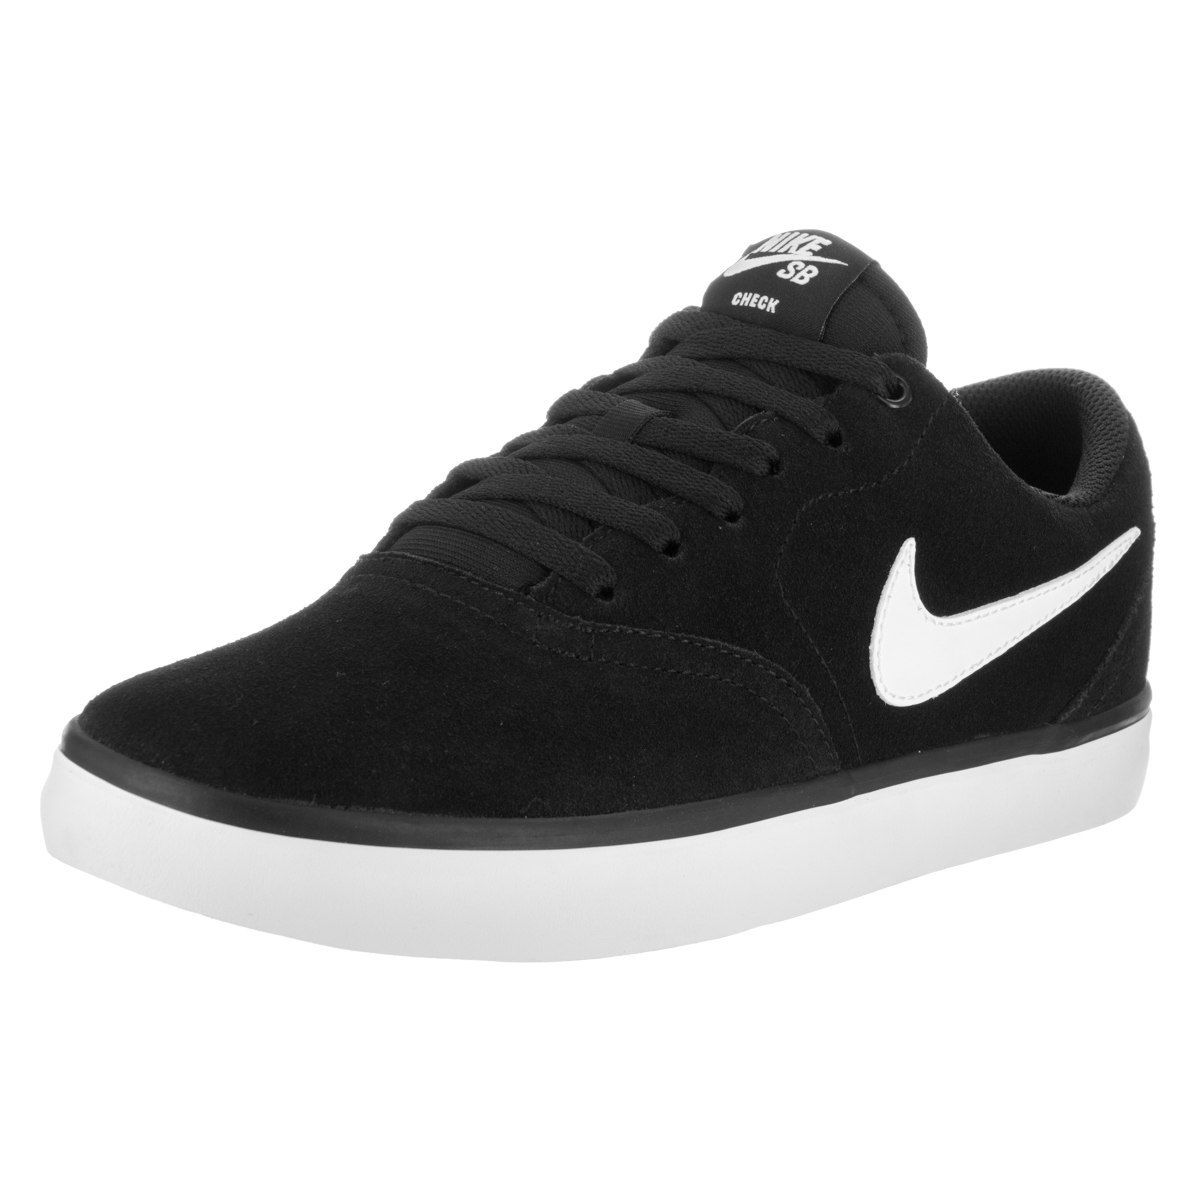 nike sb 44.5, Picture 1 of 5 ...